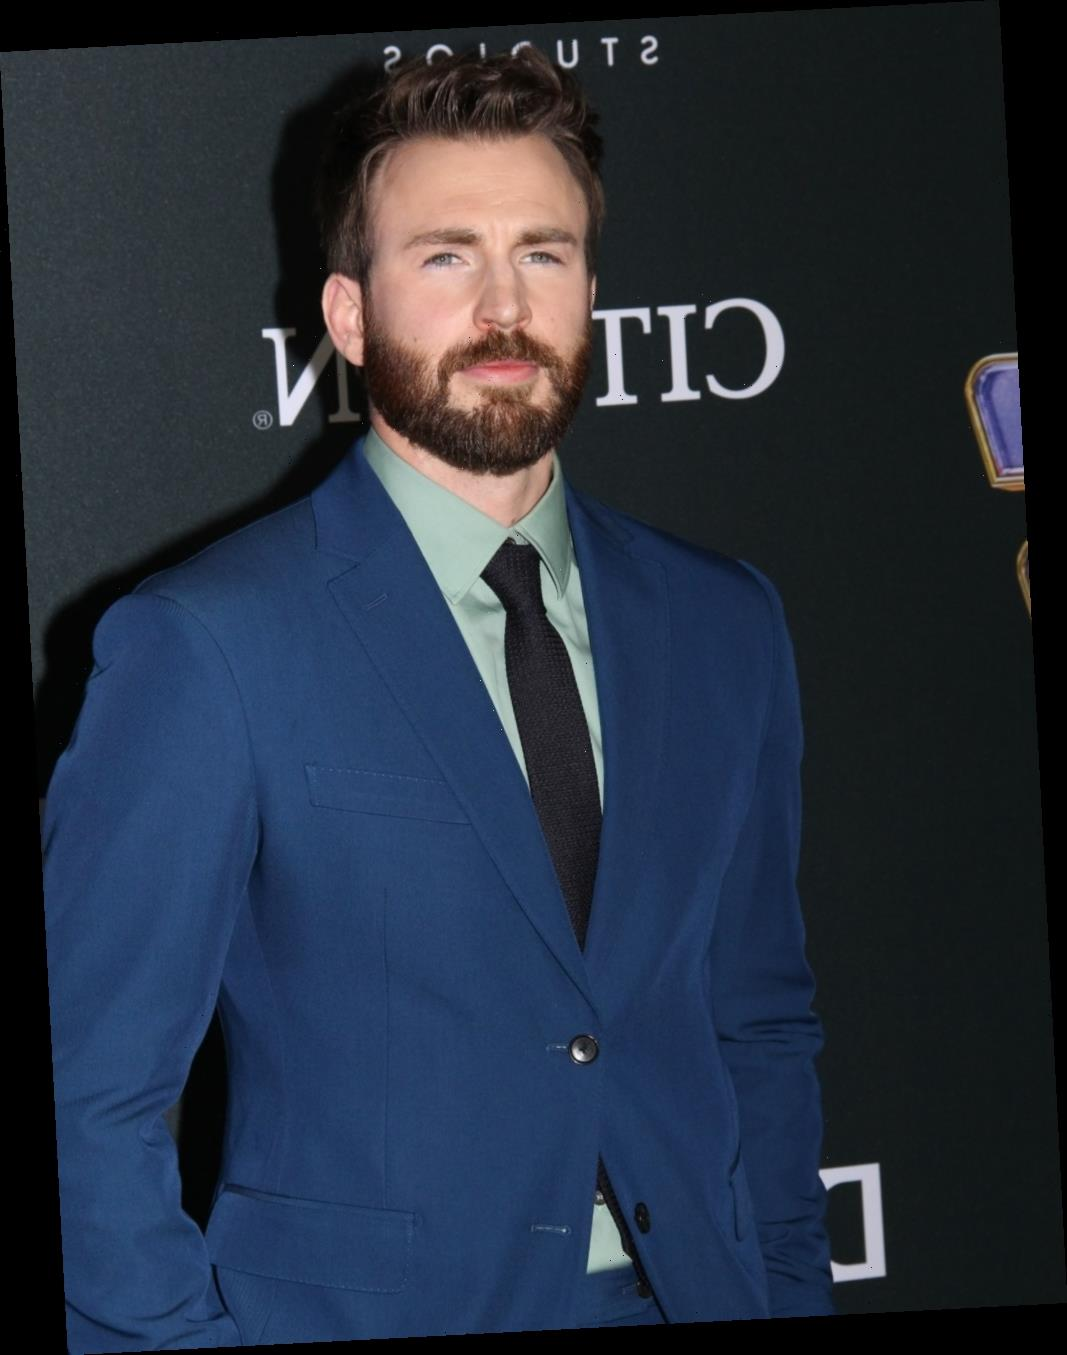 Now that Chris Evans has gotten your attention, he wants you to do something